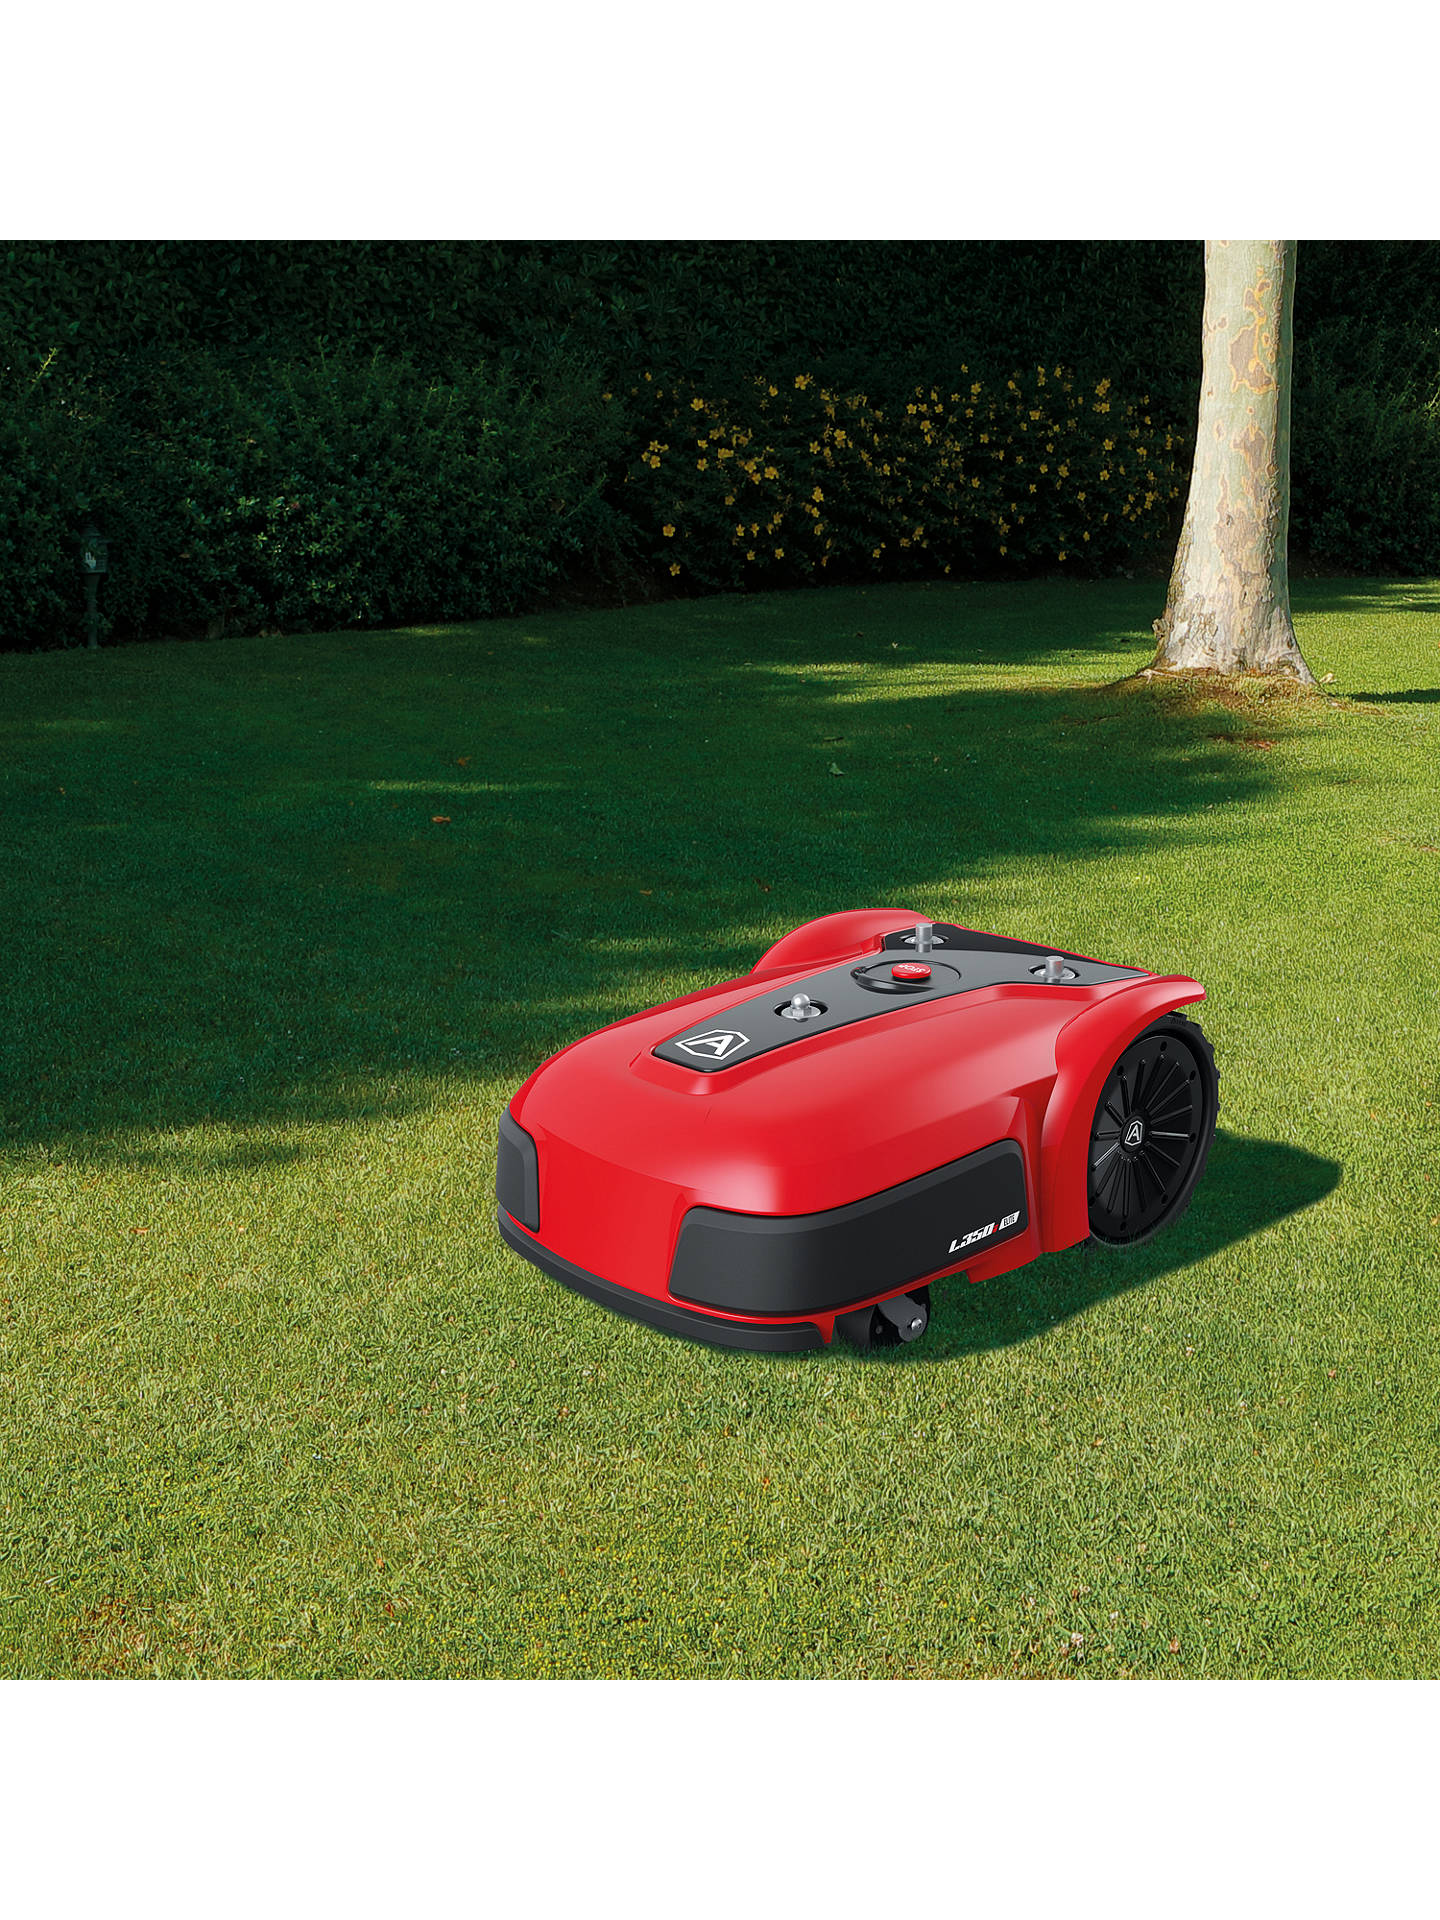 Buy Ambrogio L350i Elite Robotic Self-Propelled Lawnmower, 36cm, Red Online at johnlewis.com